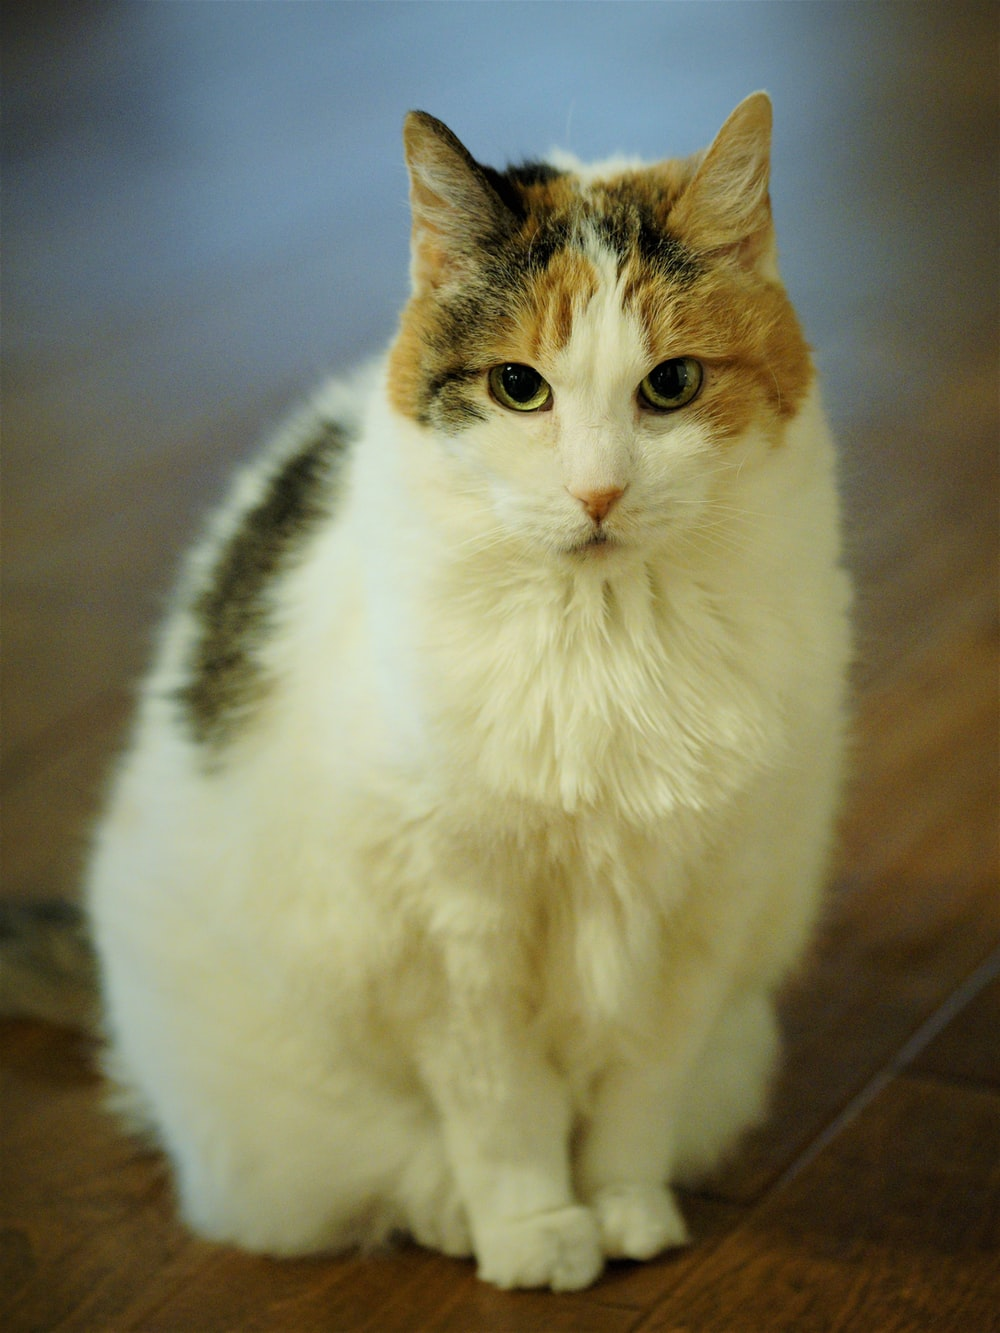 white, brown, and grey calico cat sitting on wooden floor